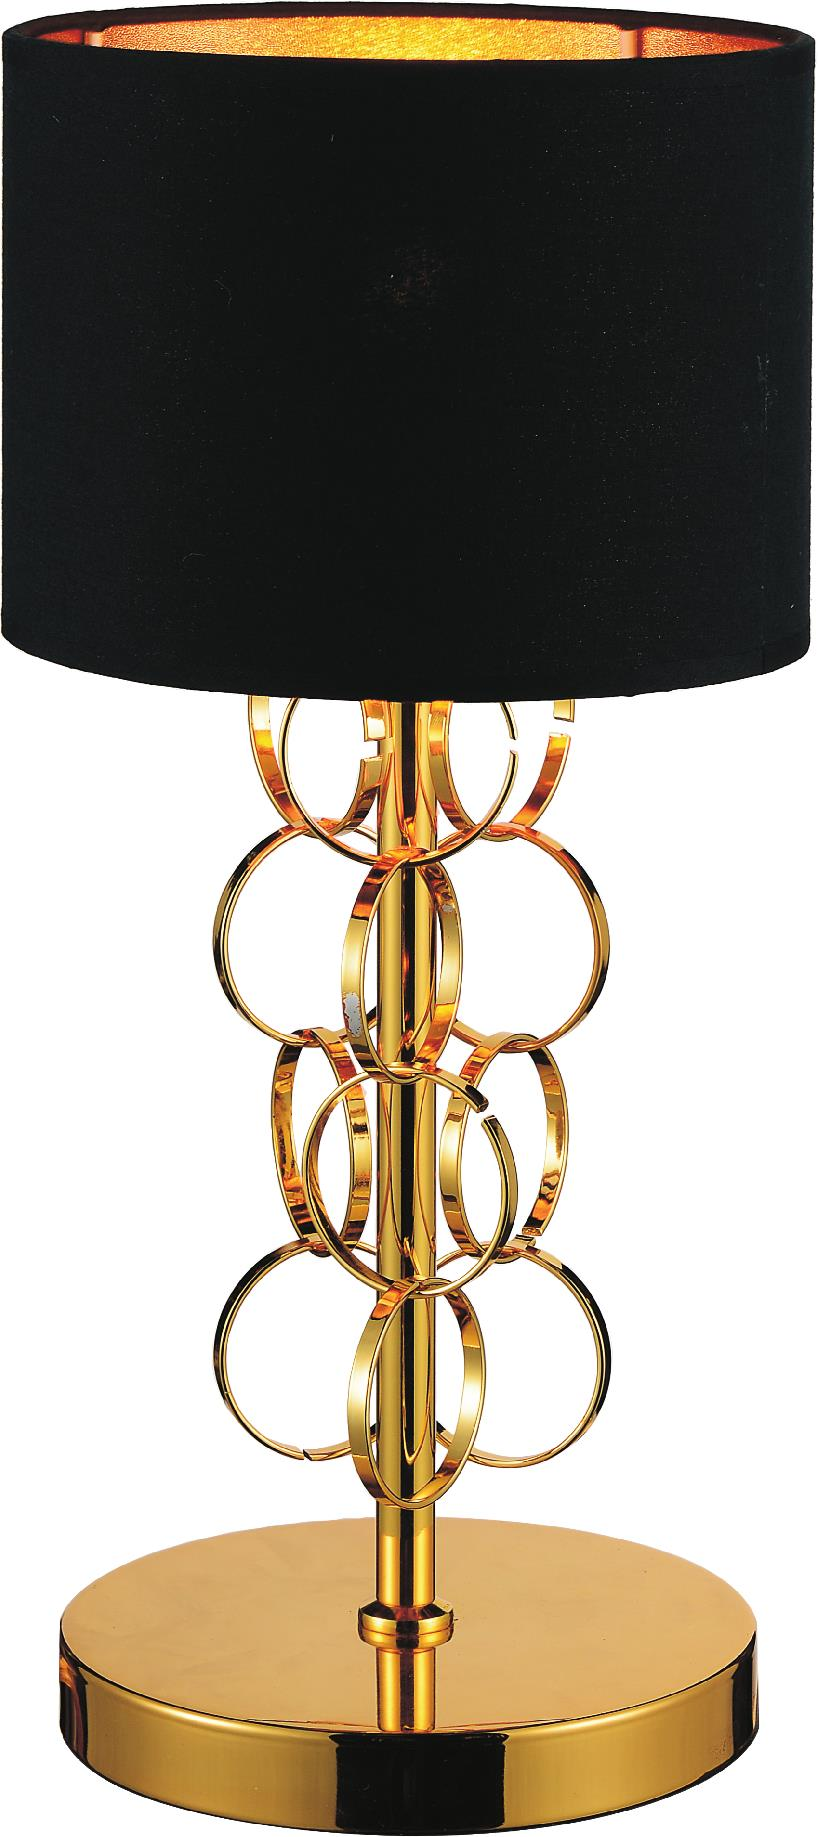 1 Light Table Lamp with Gold finish